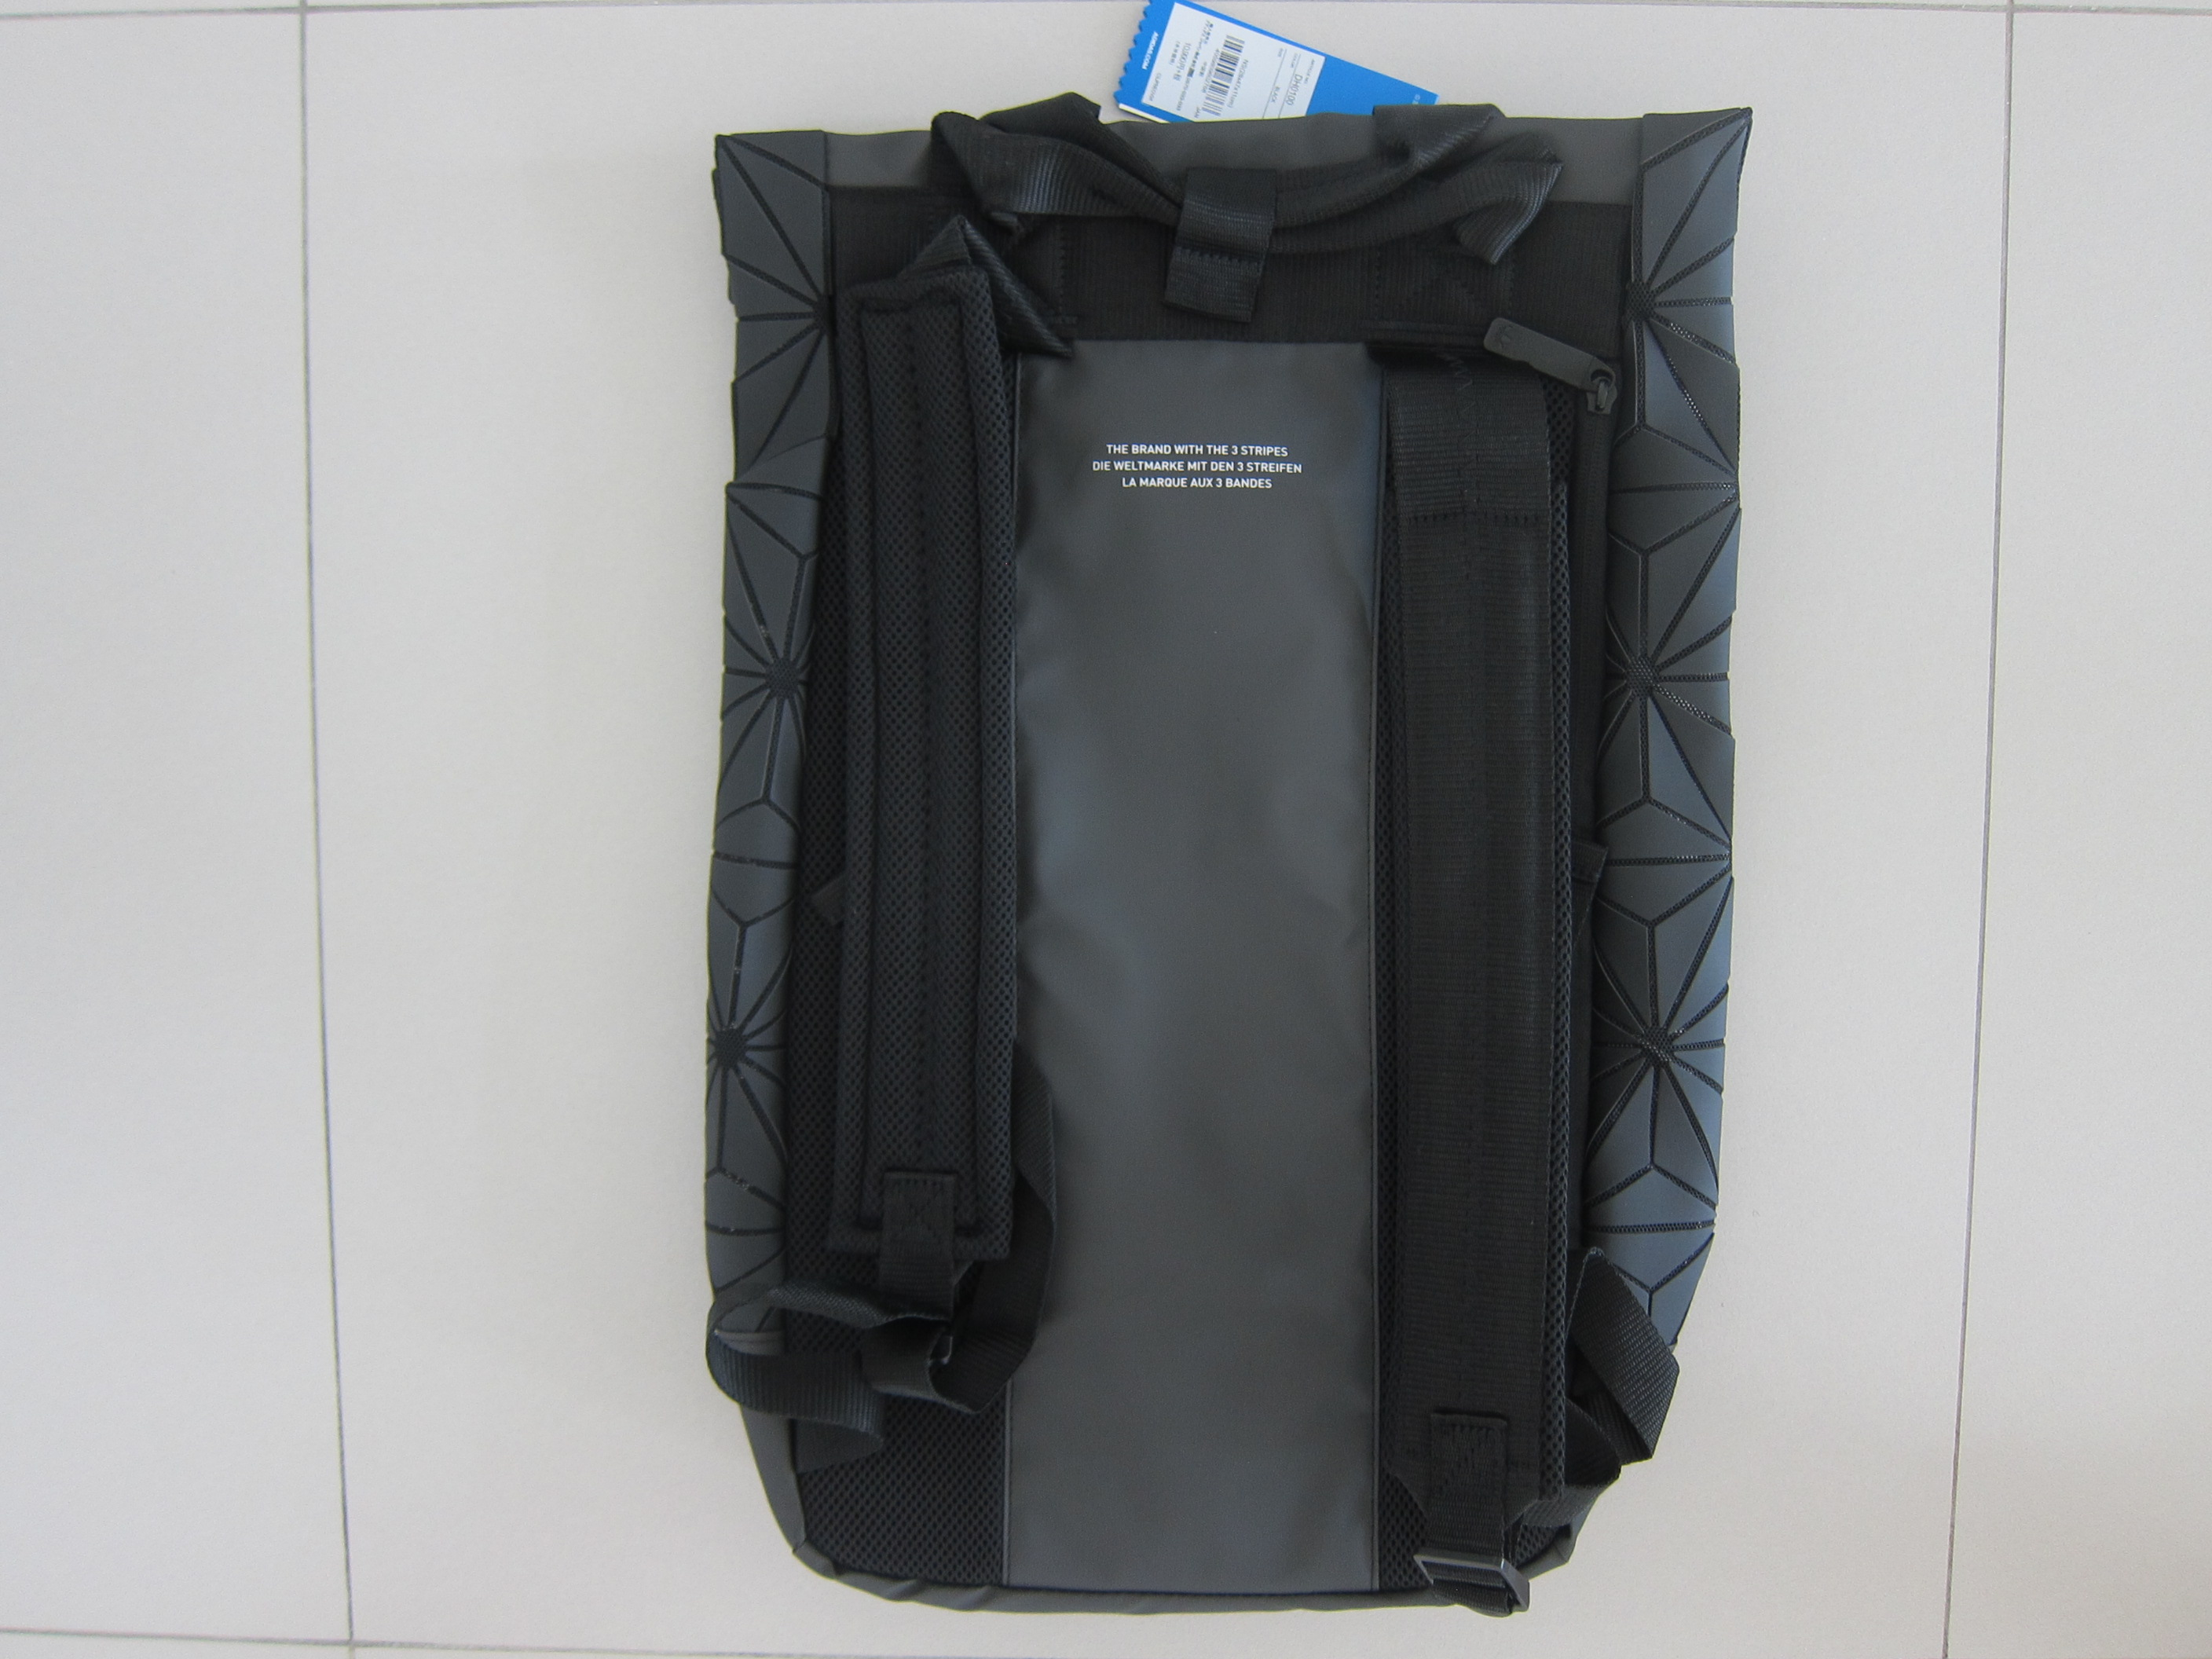 41a2e8beb0 Adidas Issey Miyake 3D Roll Top Backpack « Blog